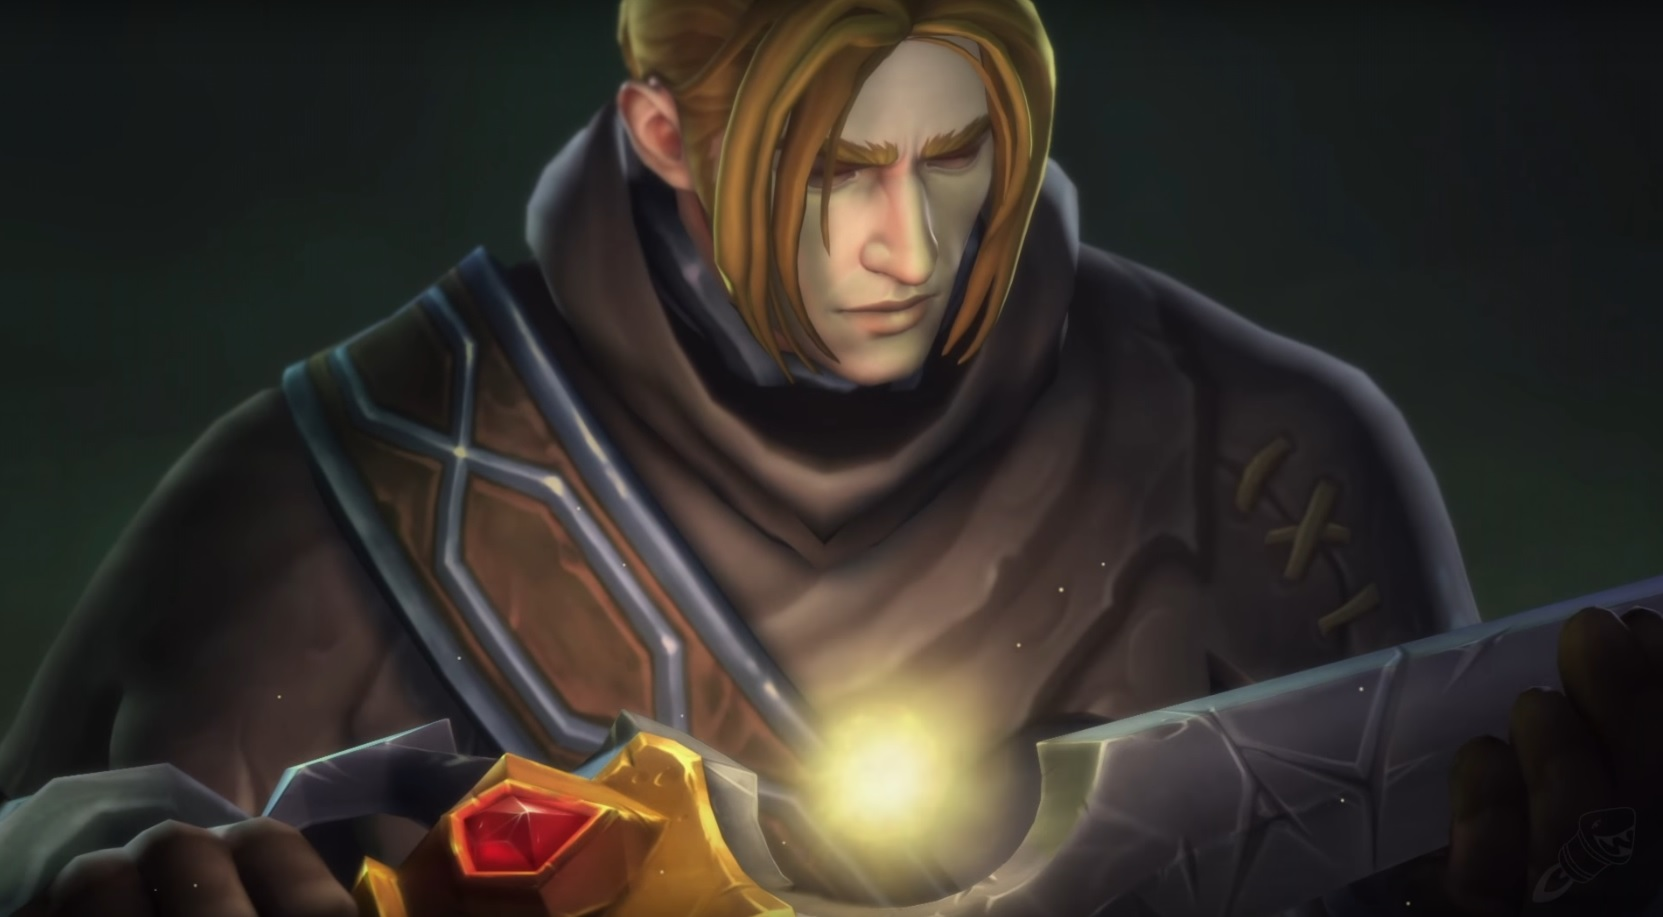 WoW Anduin Wrynn Cinematic